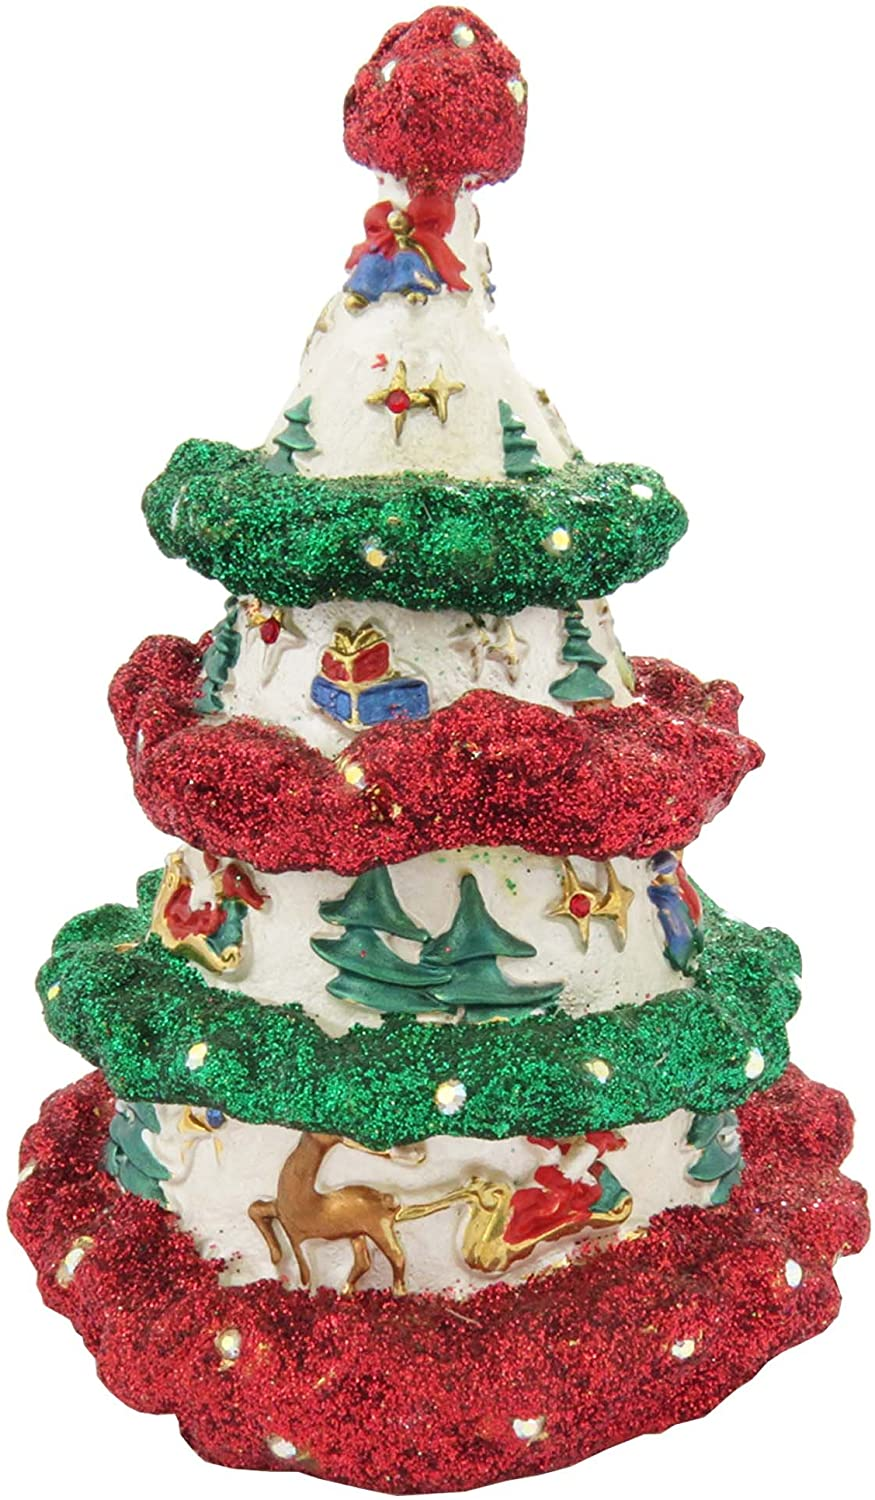 Red and Green Decorative Christmas Tree Figurine Trinket Box Enameled with Swarovski Elements Crystals